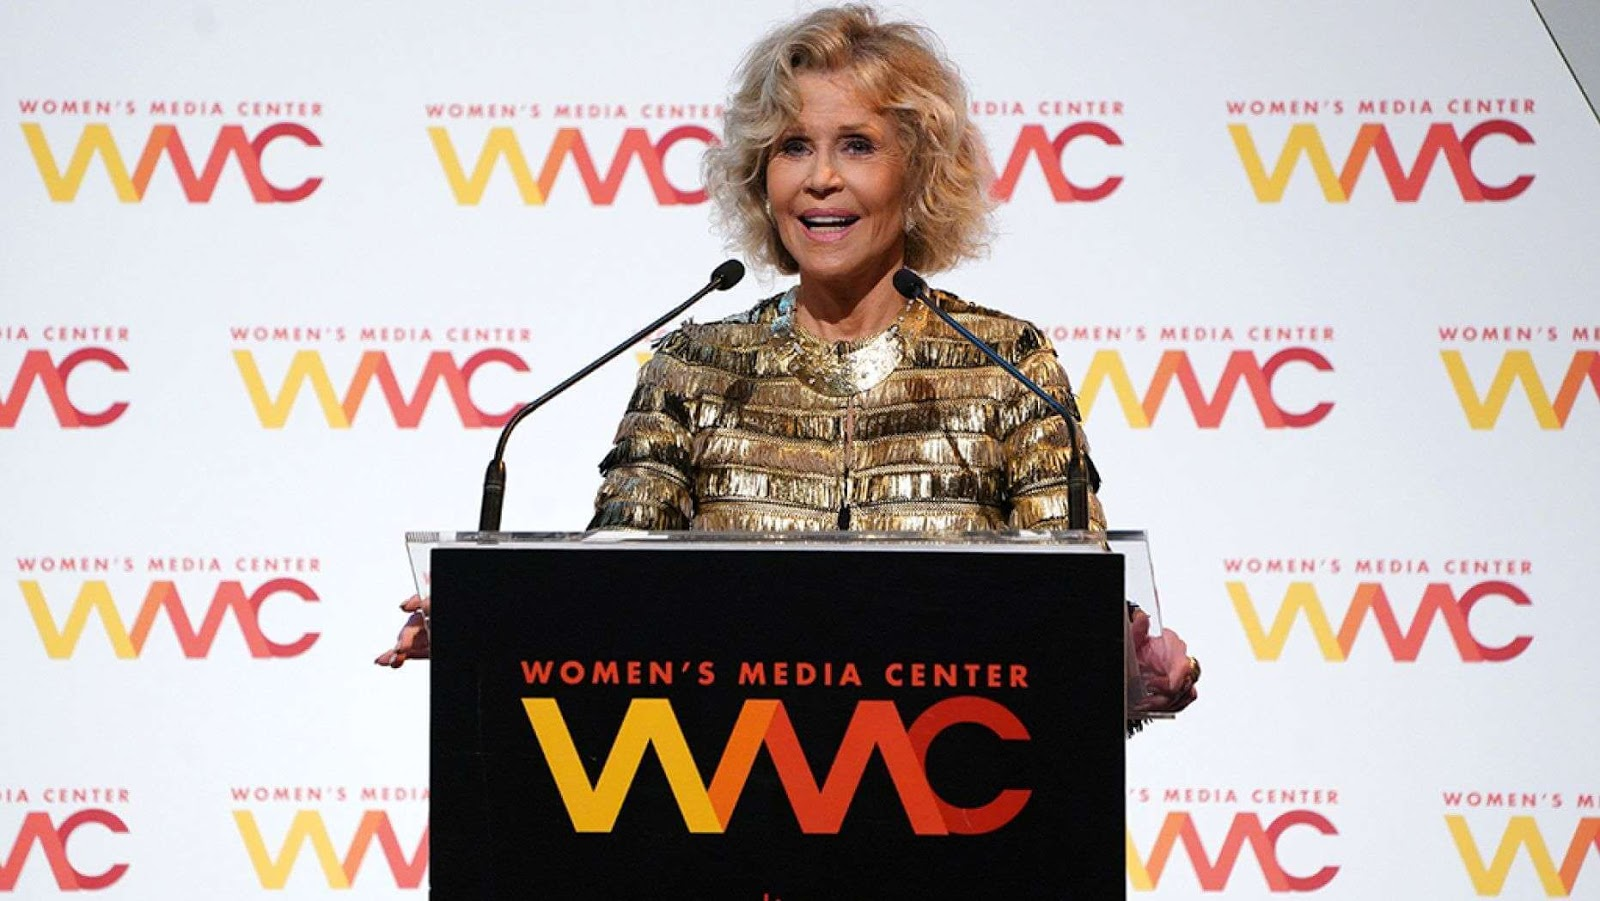 Jane Fonda compares Trump to the Third Reich, Hitler: report